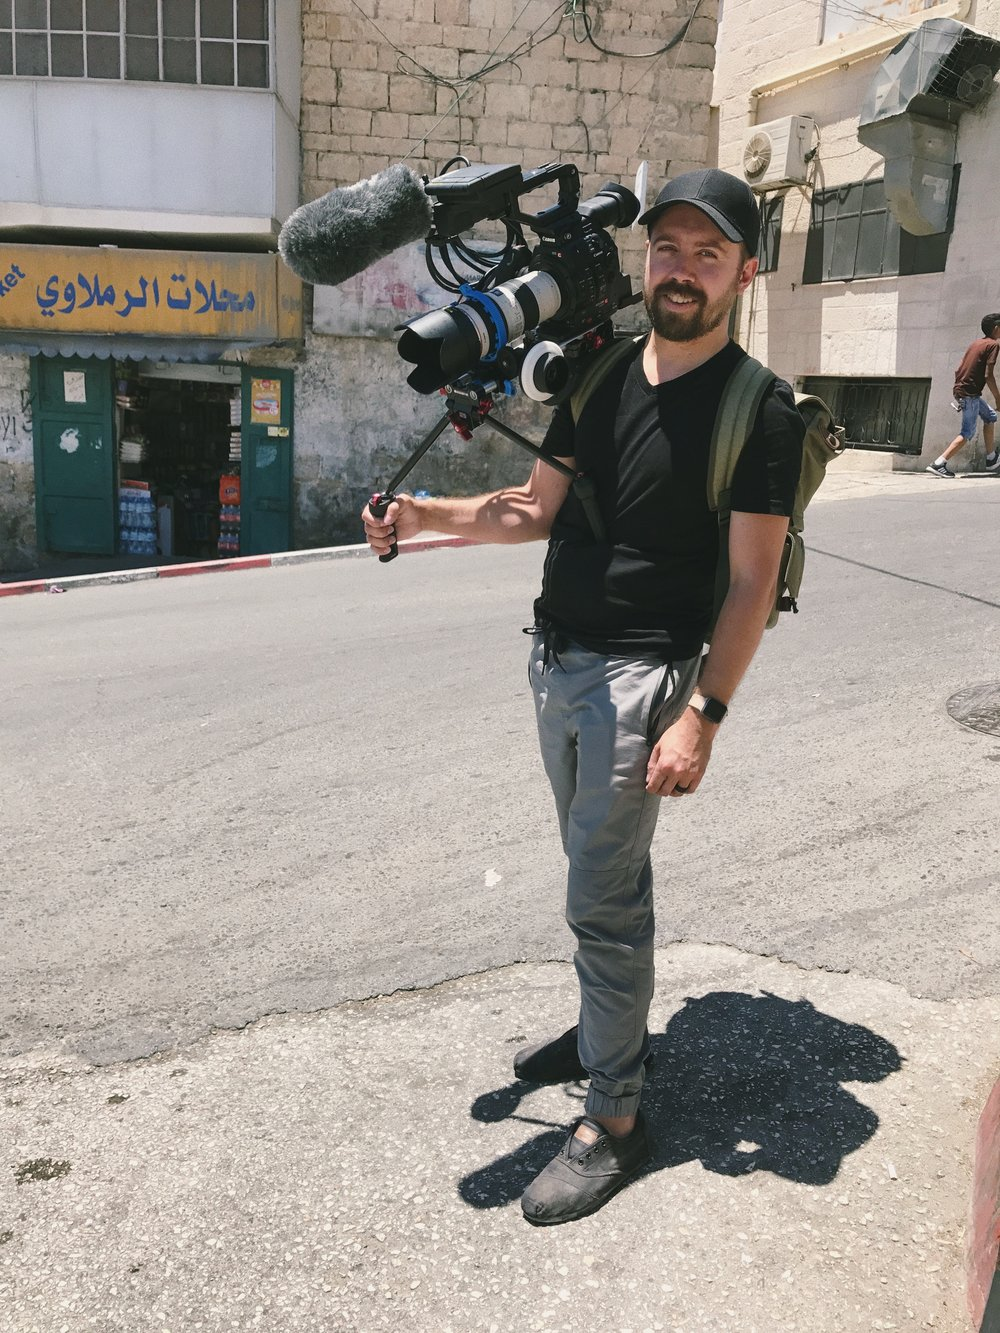 That's me in Bethlehem in 2017, filming for an  upcoming documentary  on the Palestinian experience.